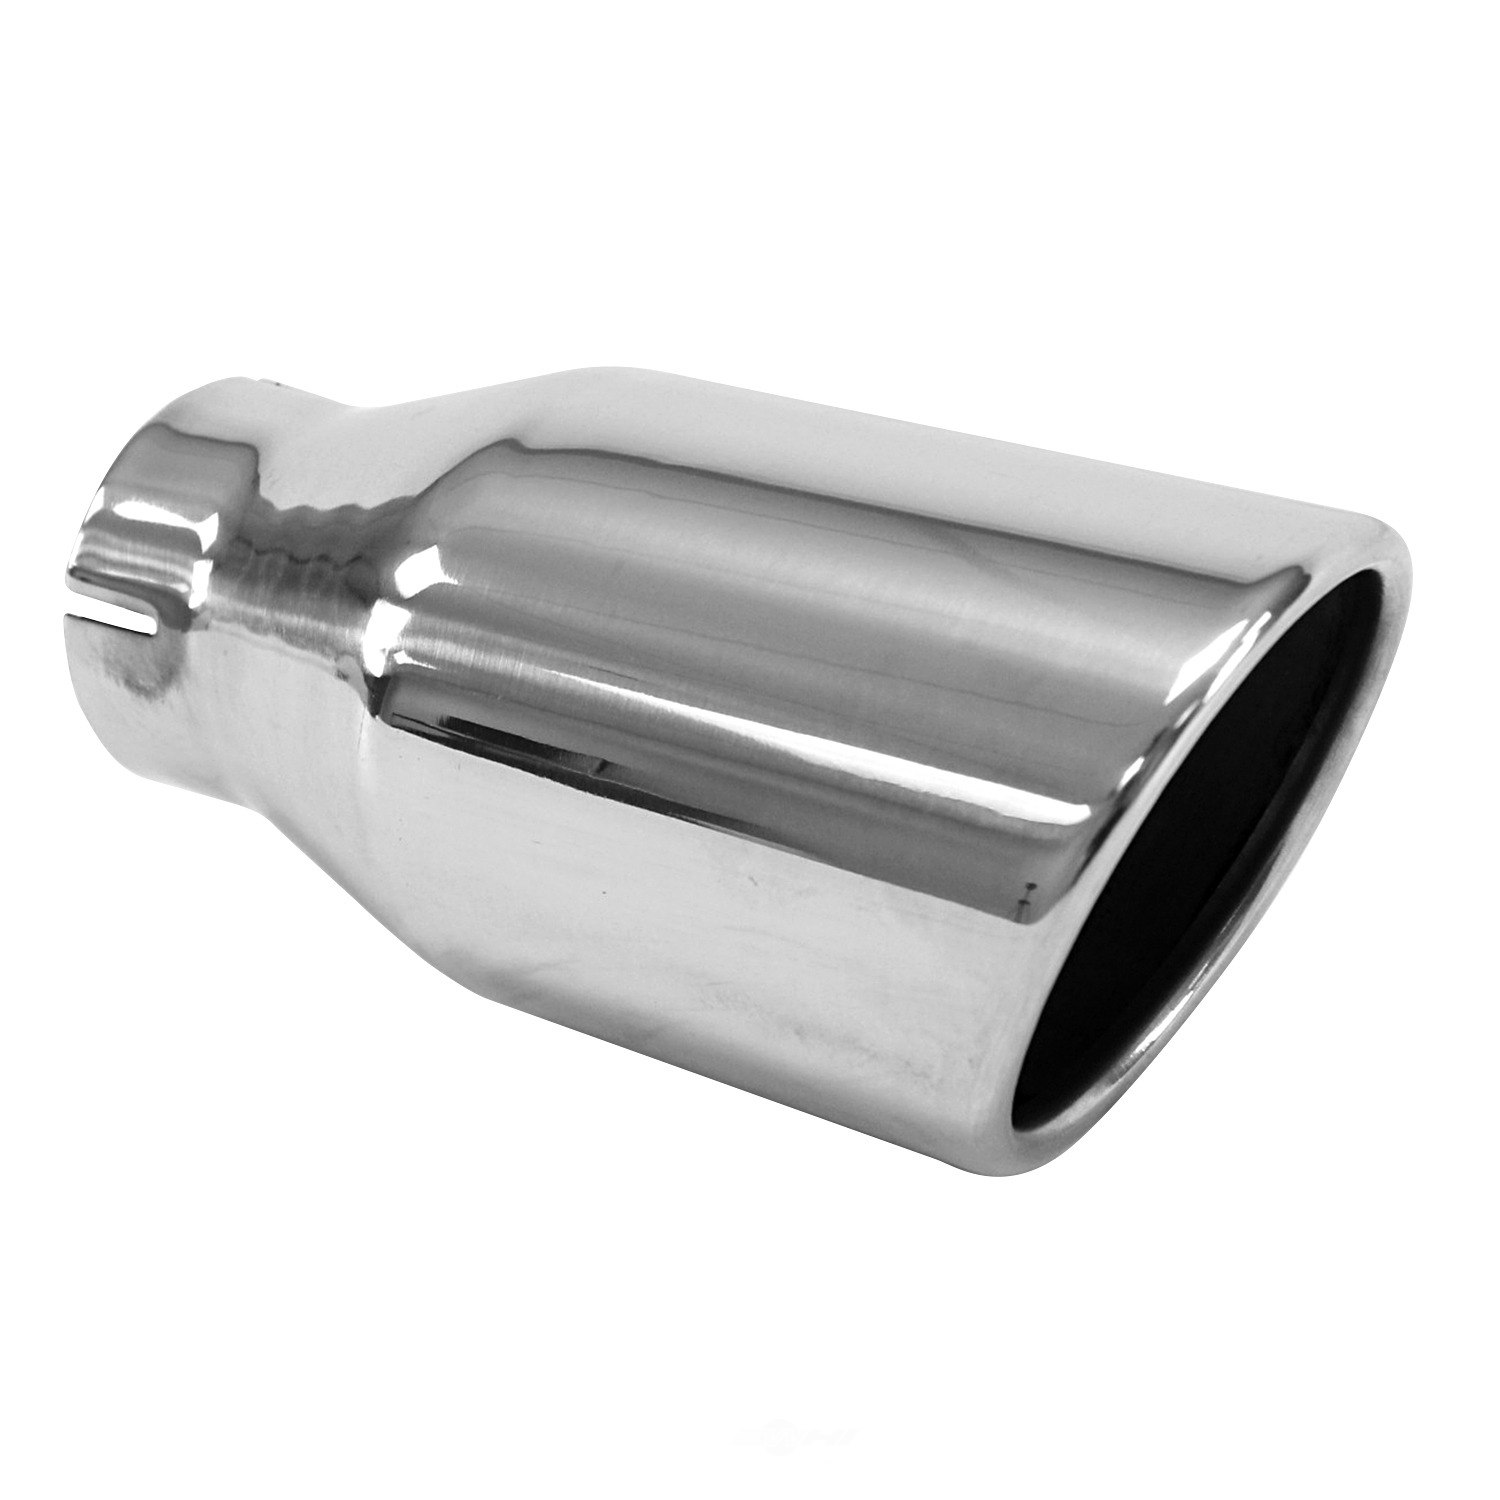 AP EXHAUST W/FEDERAL CONVERTER - Exhaust Tail Pipe Tip - APF ST1257S